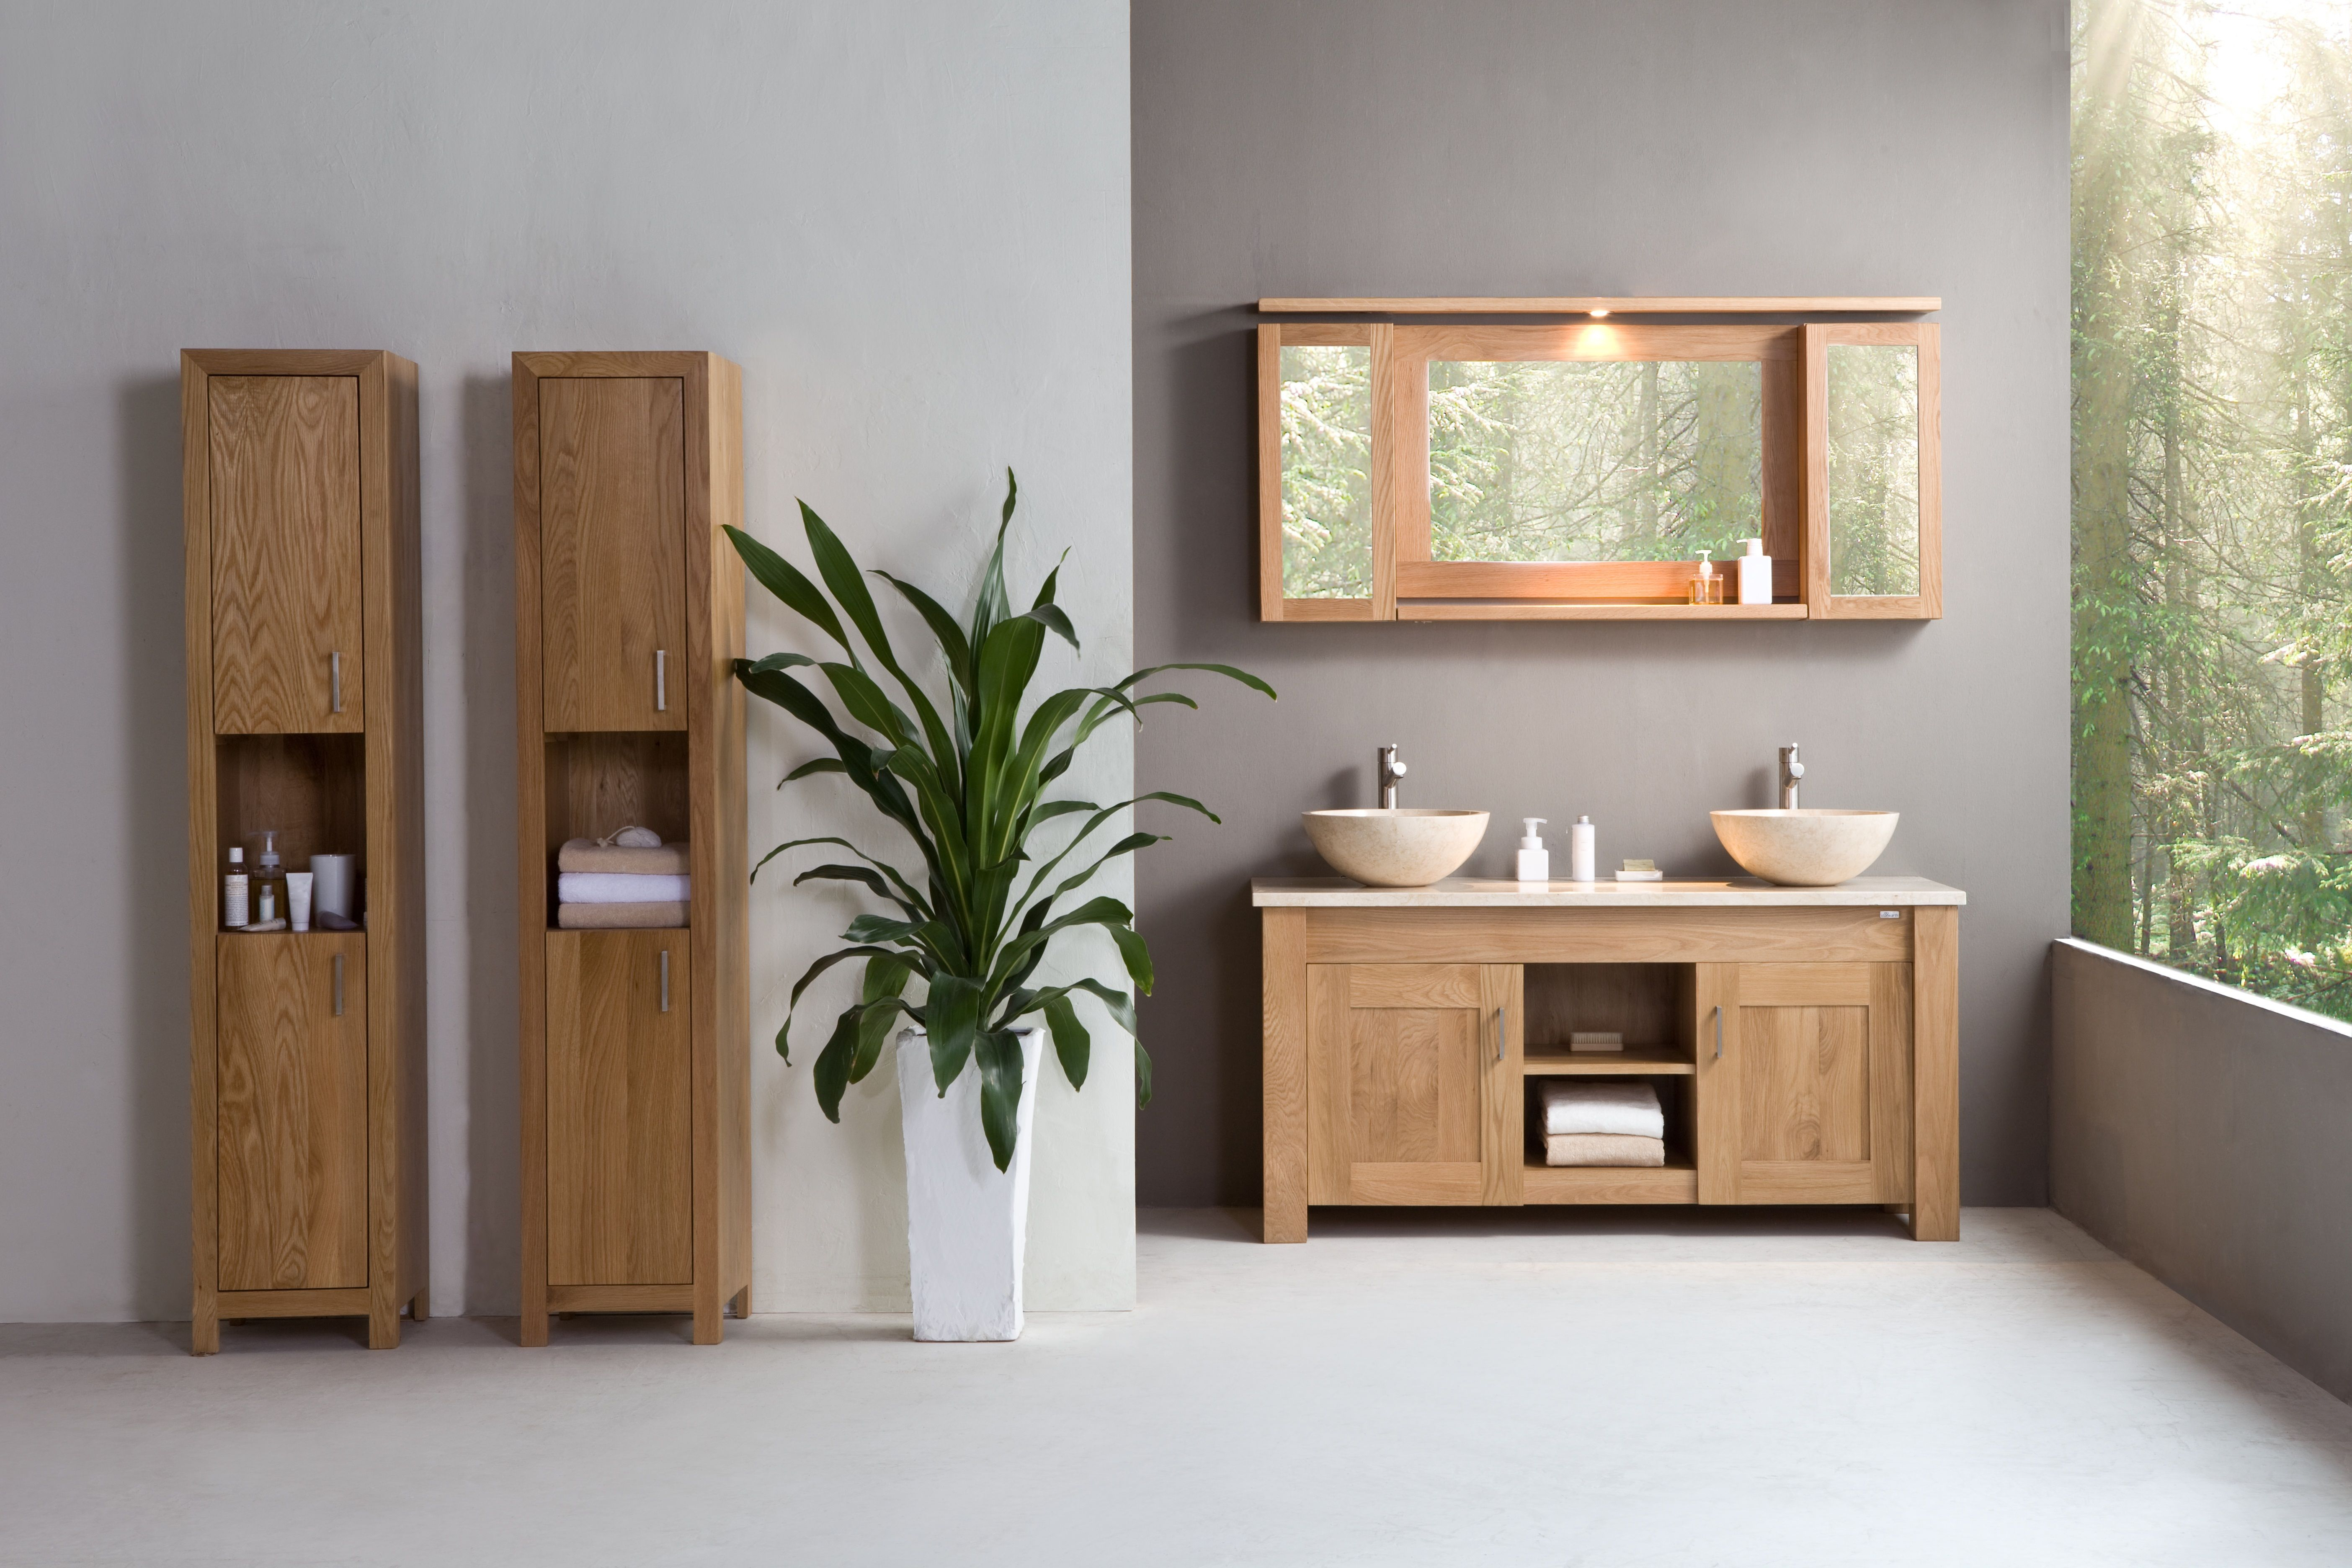 Stonearth Oak Finesse Cabinet Solid Wood Washstands This within sizing 5616 X 3744